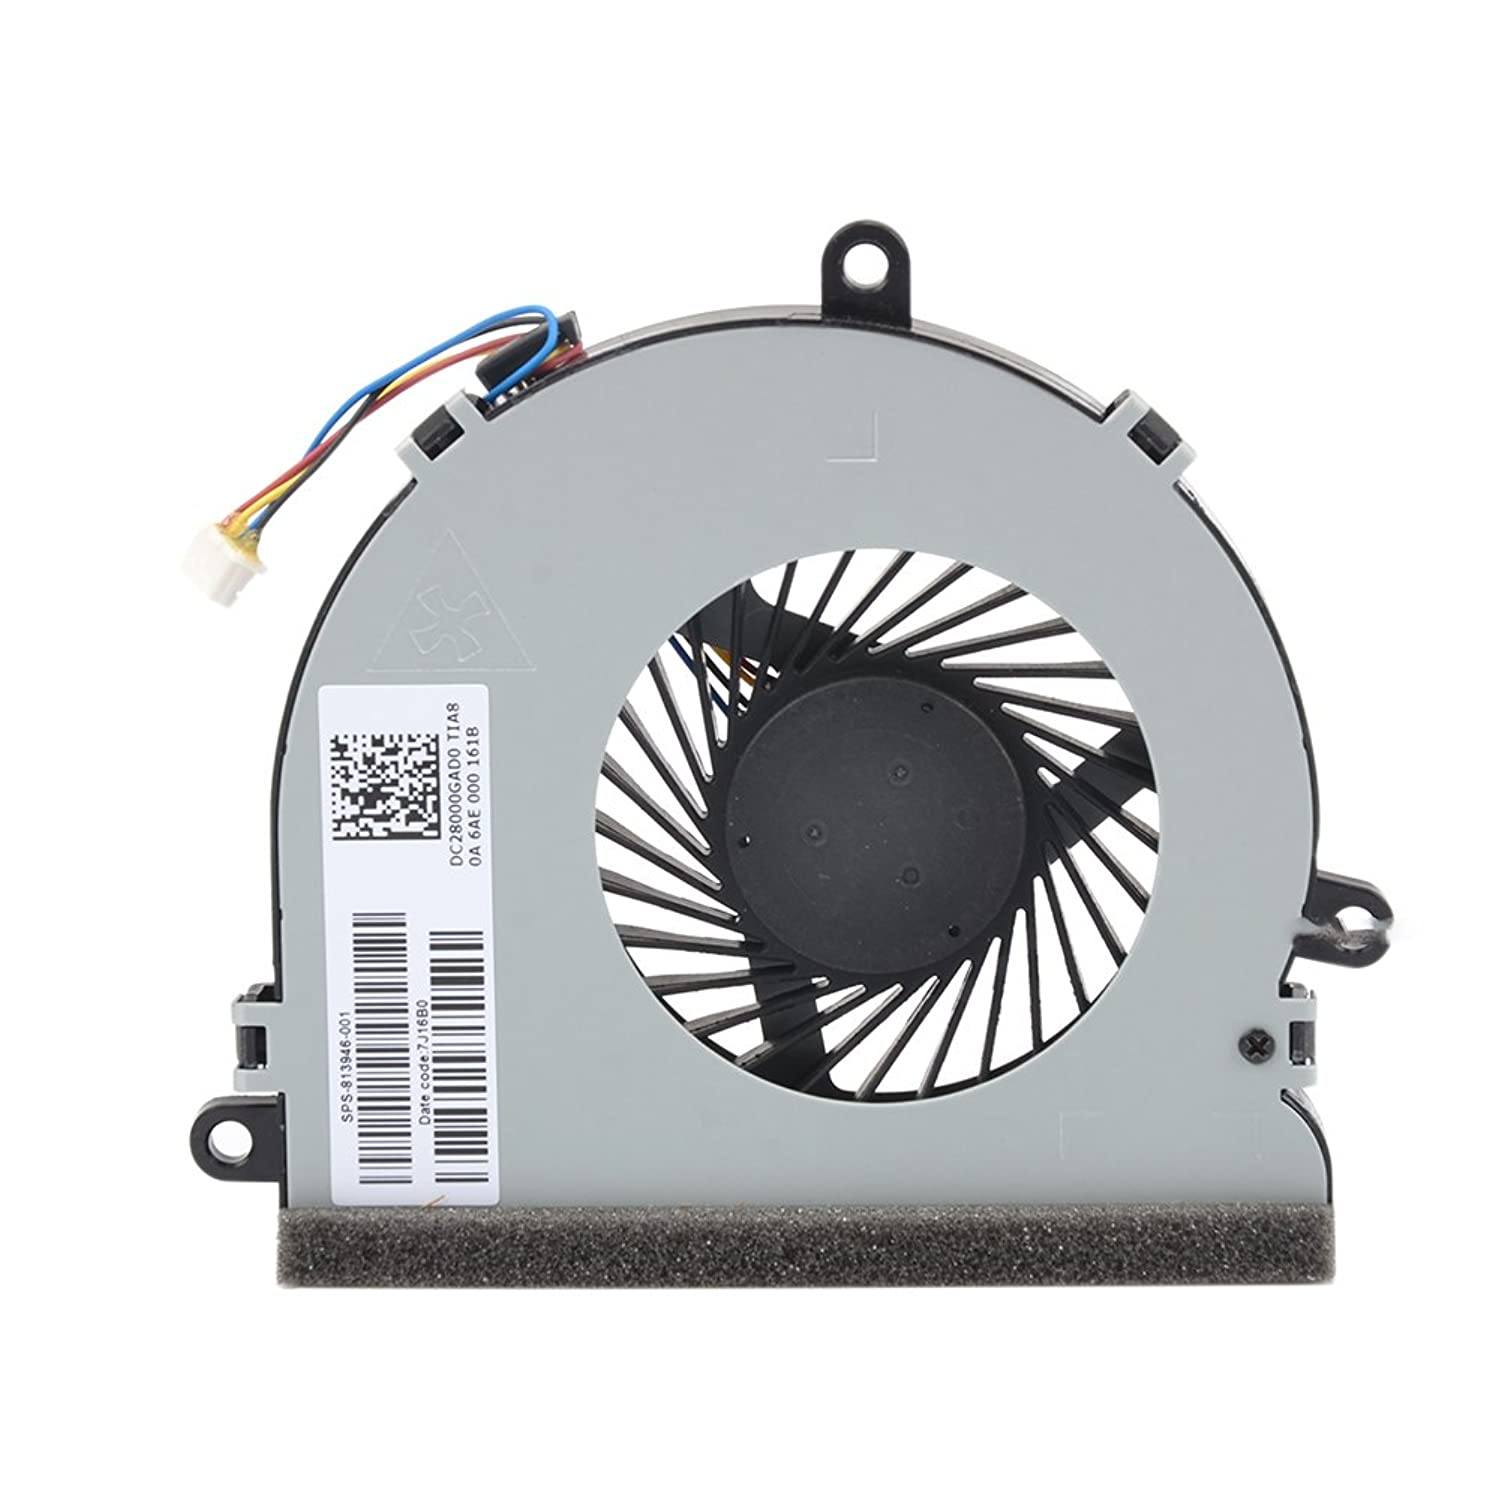 Eathtek Replacement CPU Cooling Fan for HP 15-AC 15-AC622TX 15-ac032no 15-ac033no 15-ac042ur 15-ac121dx 15-ac029ds 15-ac120nr 15-ac137cl 15-ac023ur Series, Compatible Part Number 813946-001